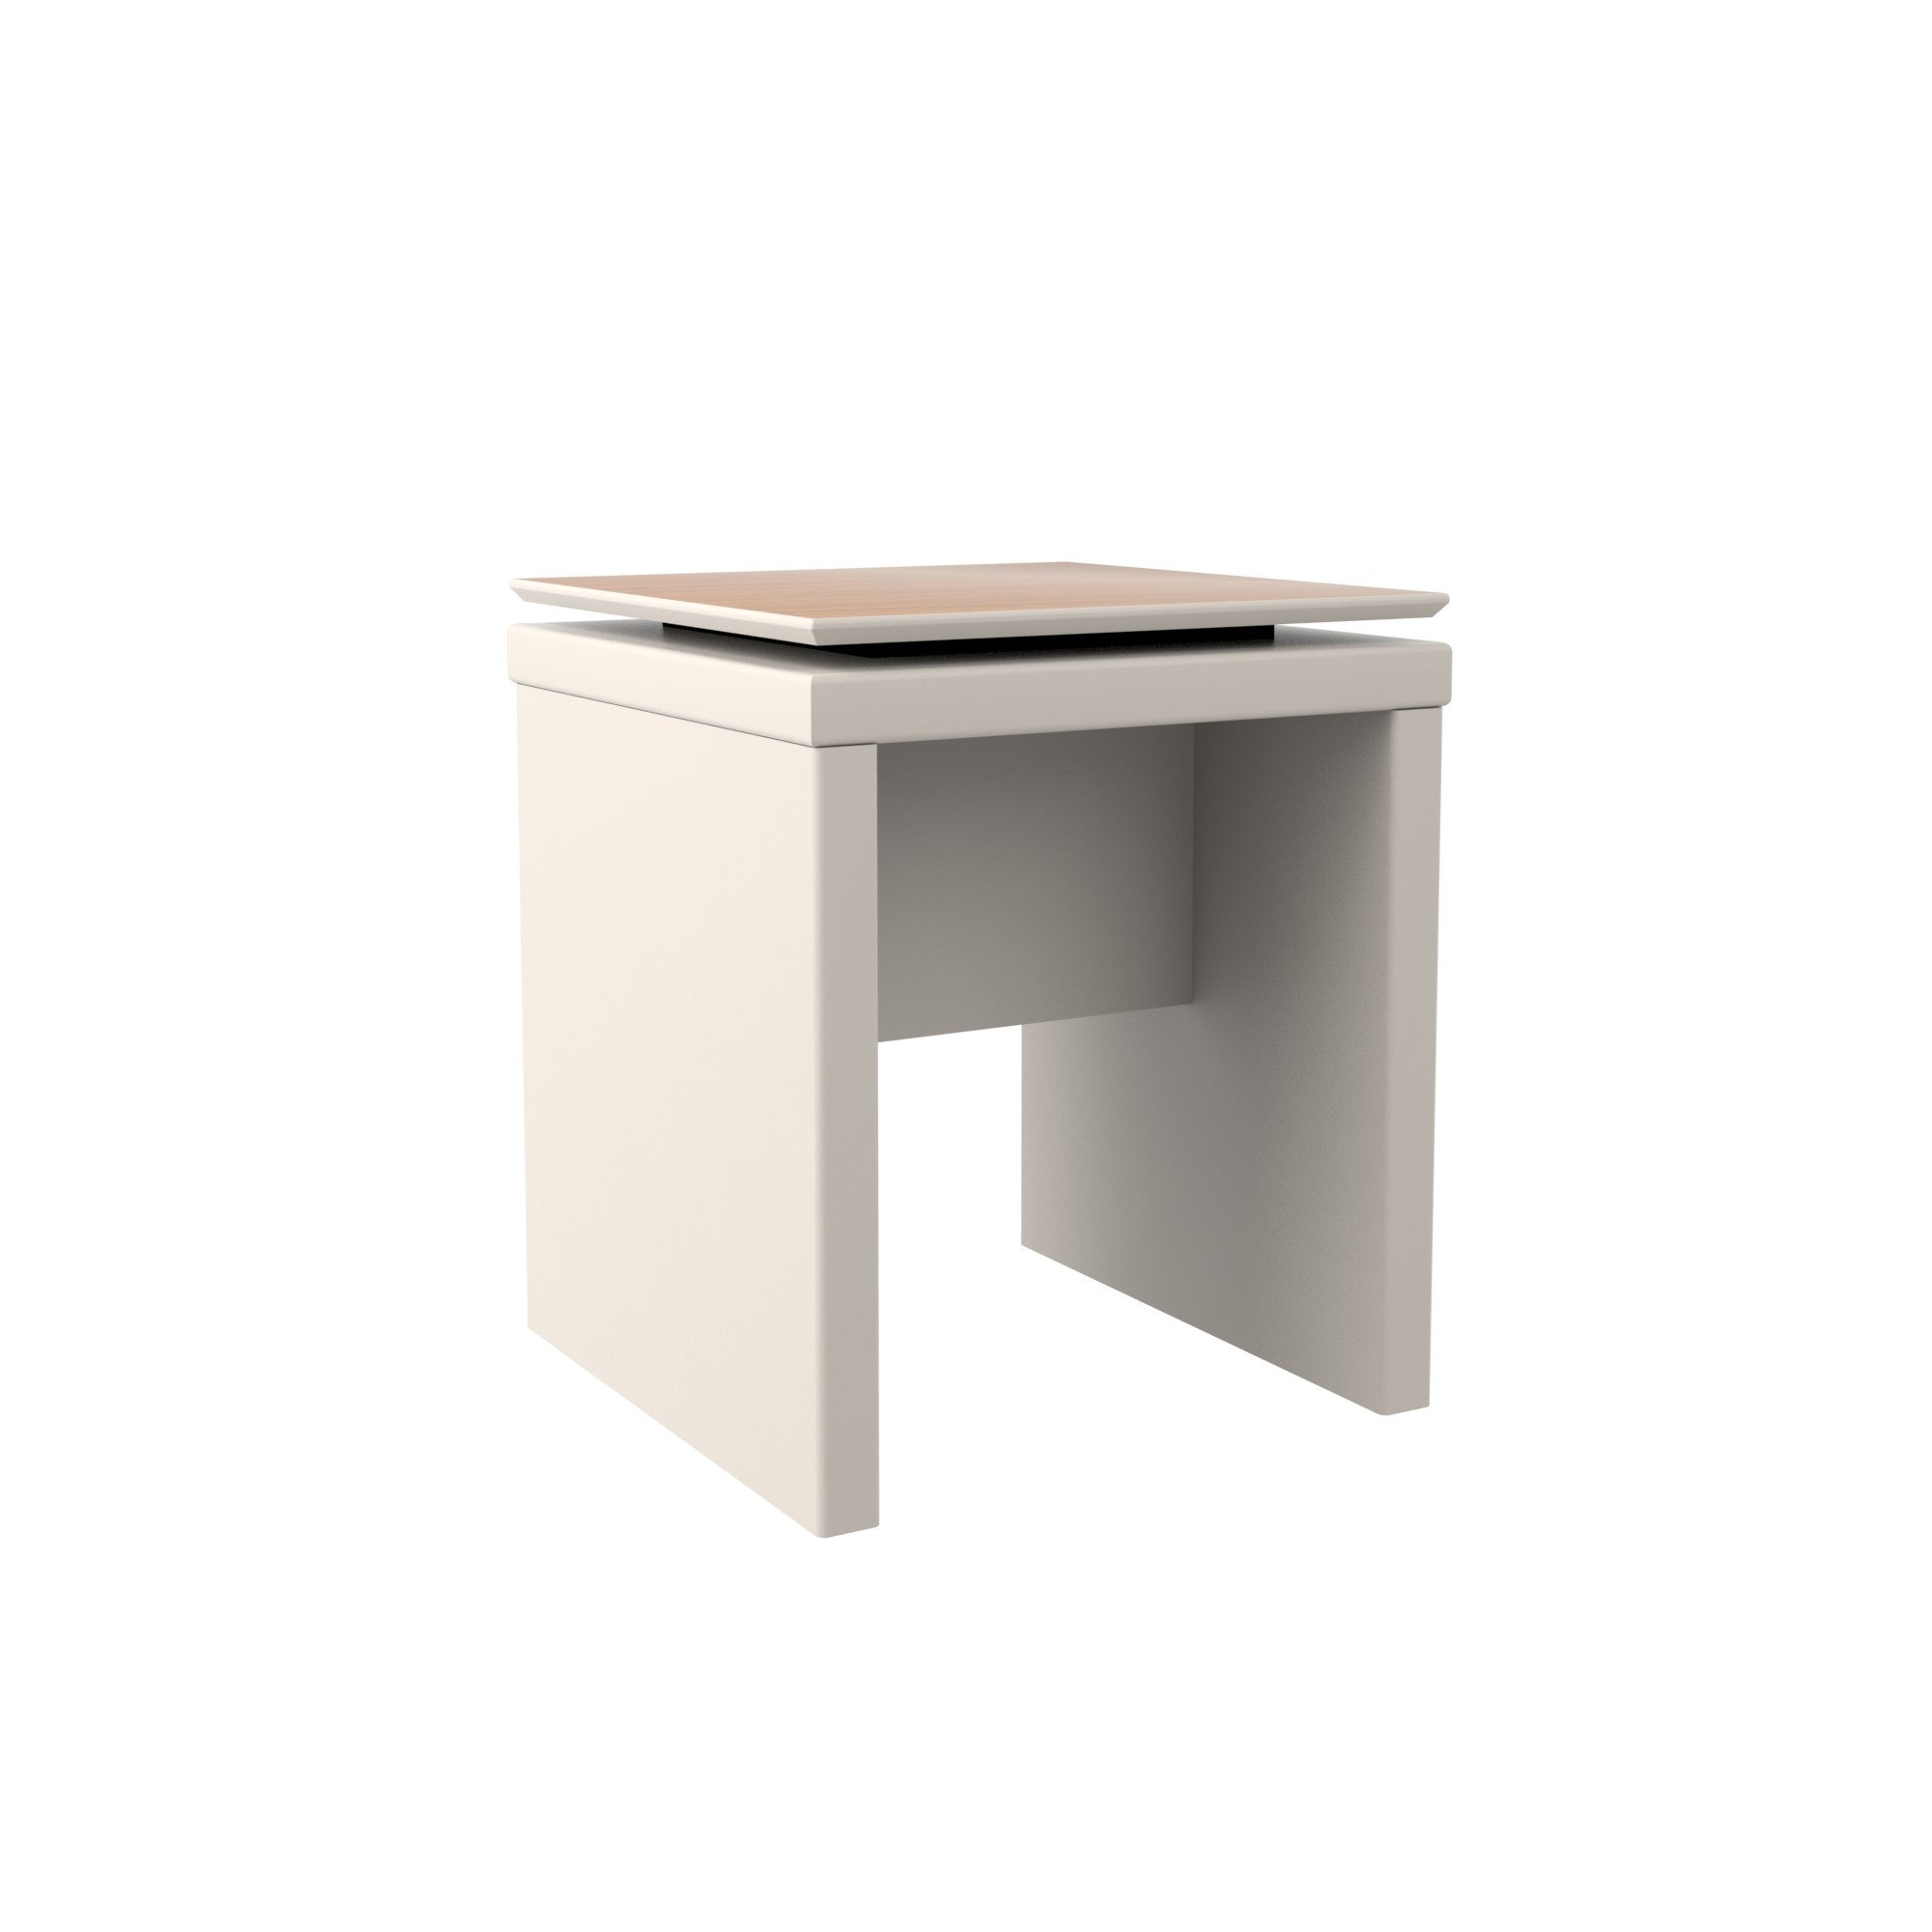 Pleasing Square End Table In Off White And Maple Cream Uwap Interior Chair Design Uwaporg